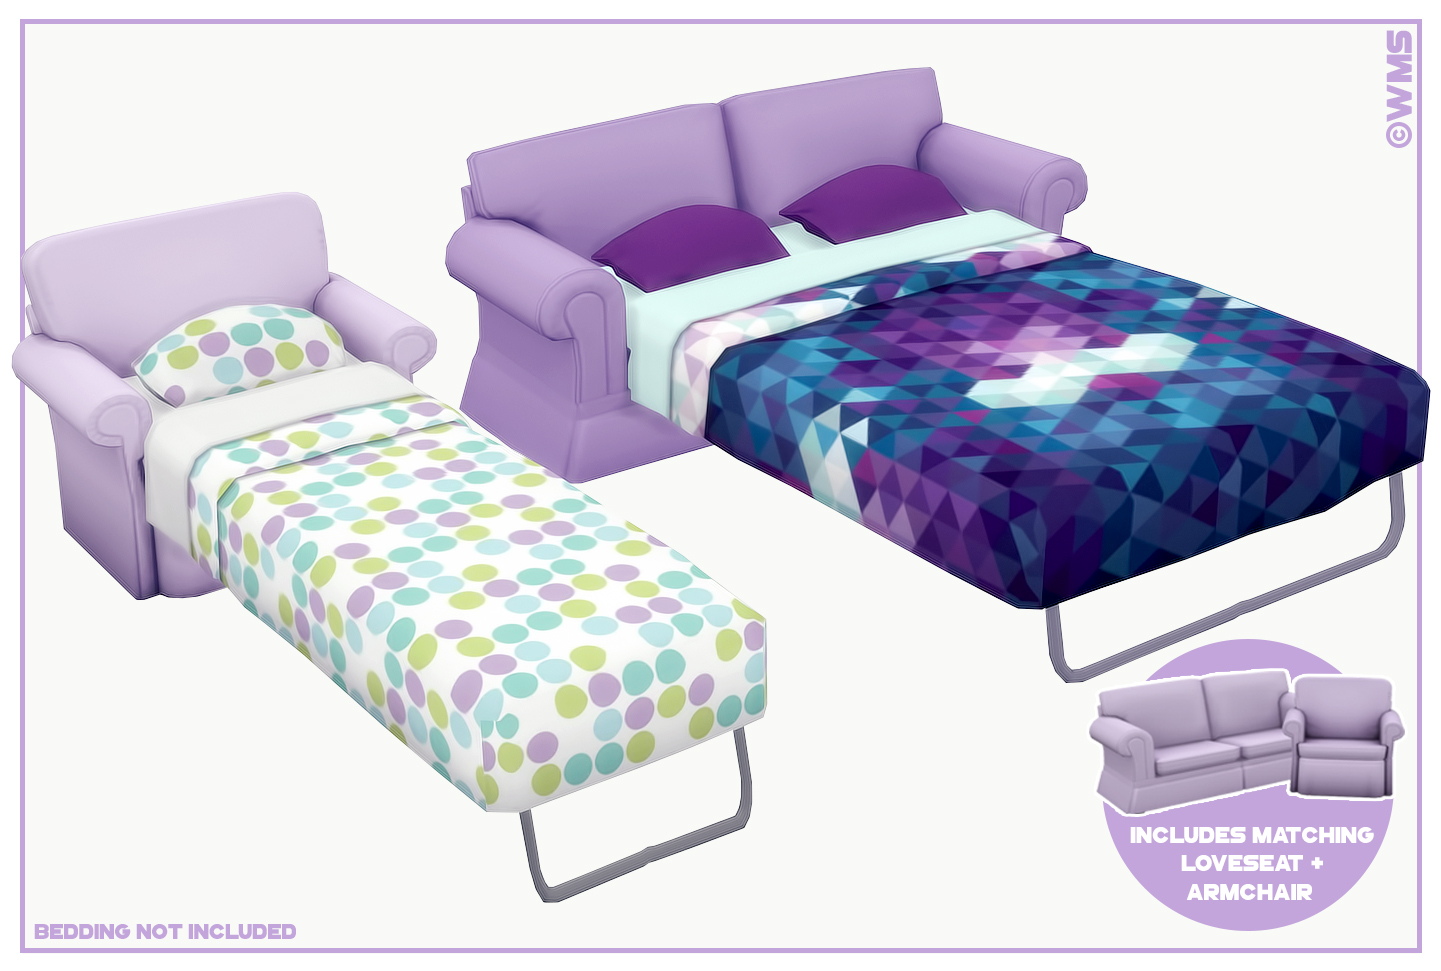 Sims 4 Dylan Sofa Beds Dylan Sofa Bed | Wildlyminiaturesandwich